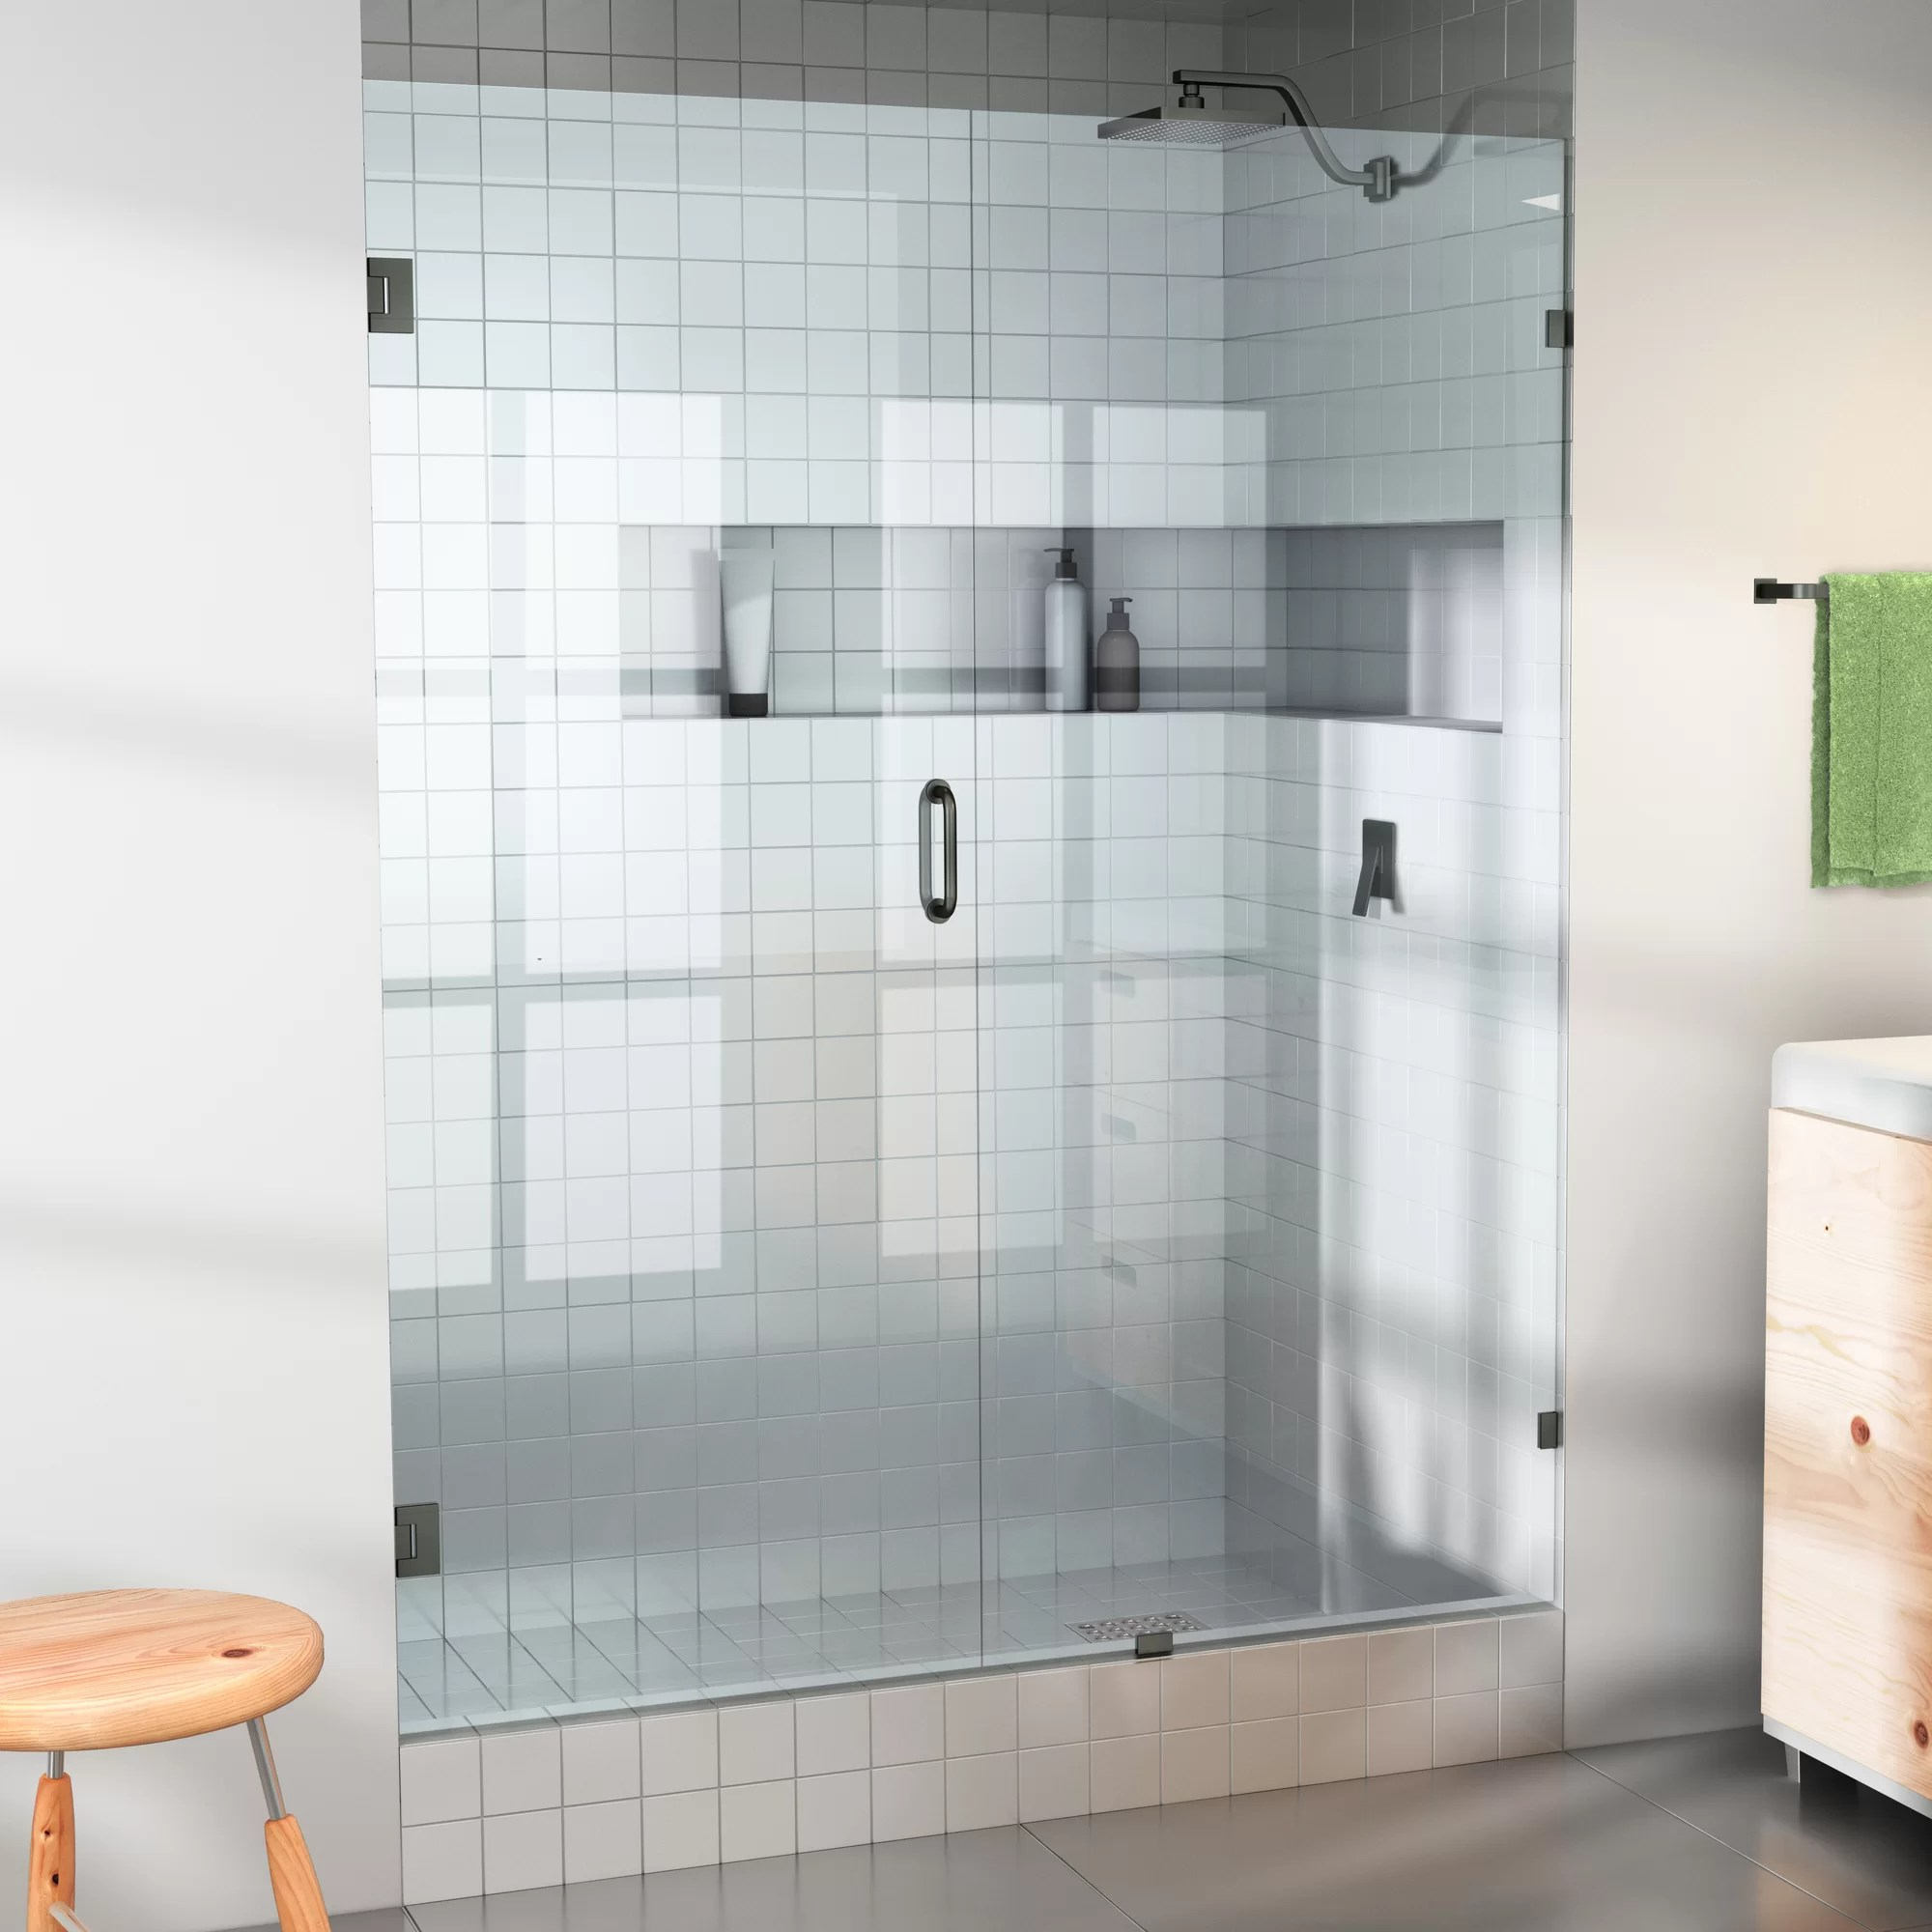 Details About Glass Warehouse 33 X 78 Hinged Frameless Shower Door Oil Rubbed Bronze